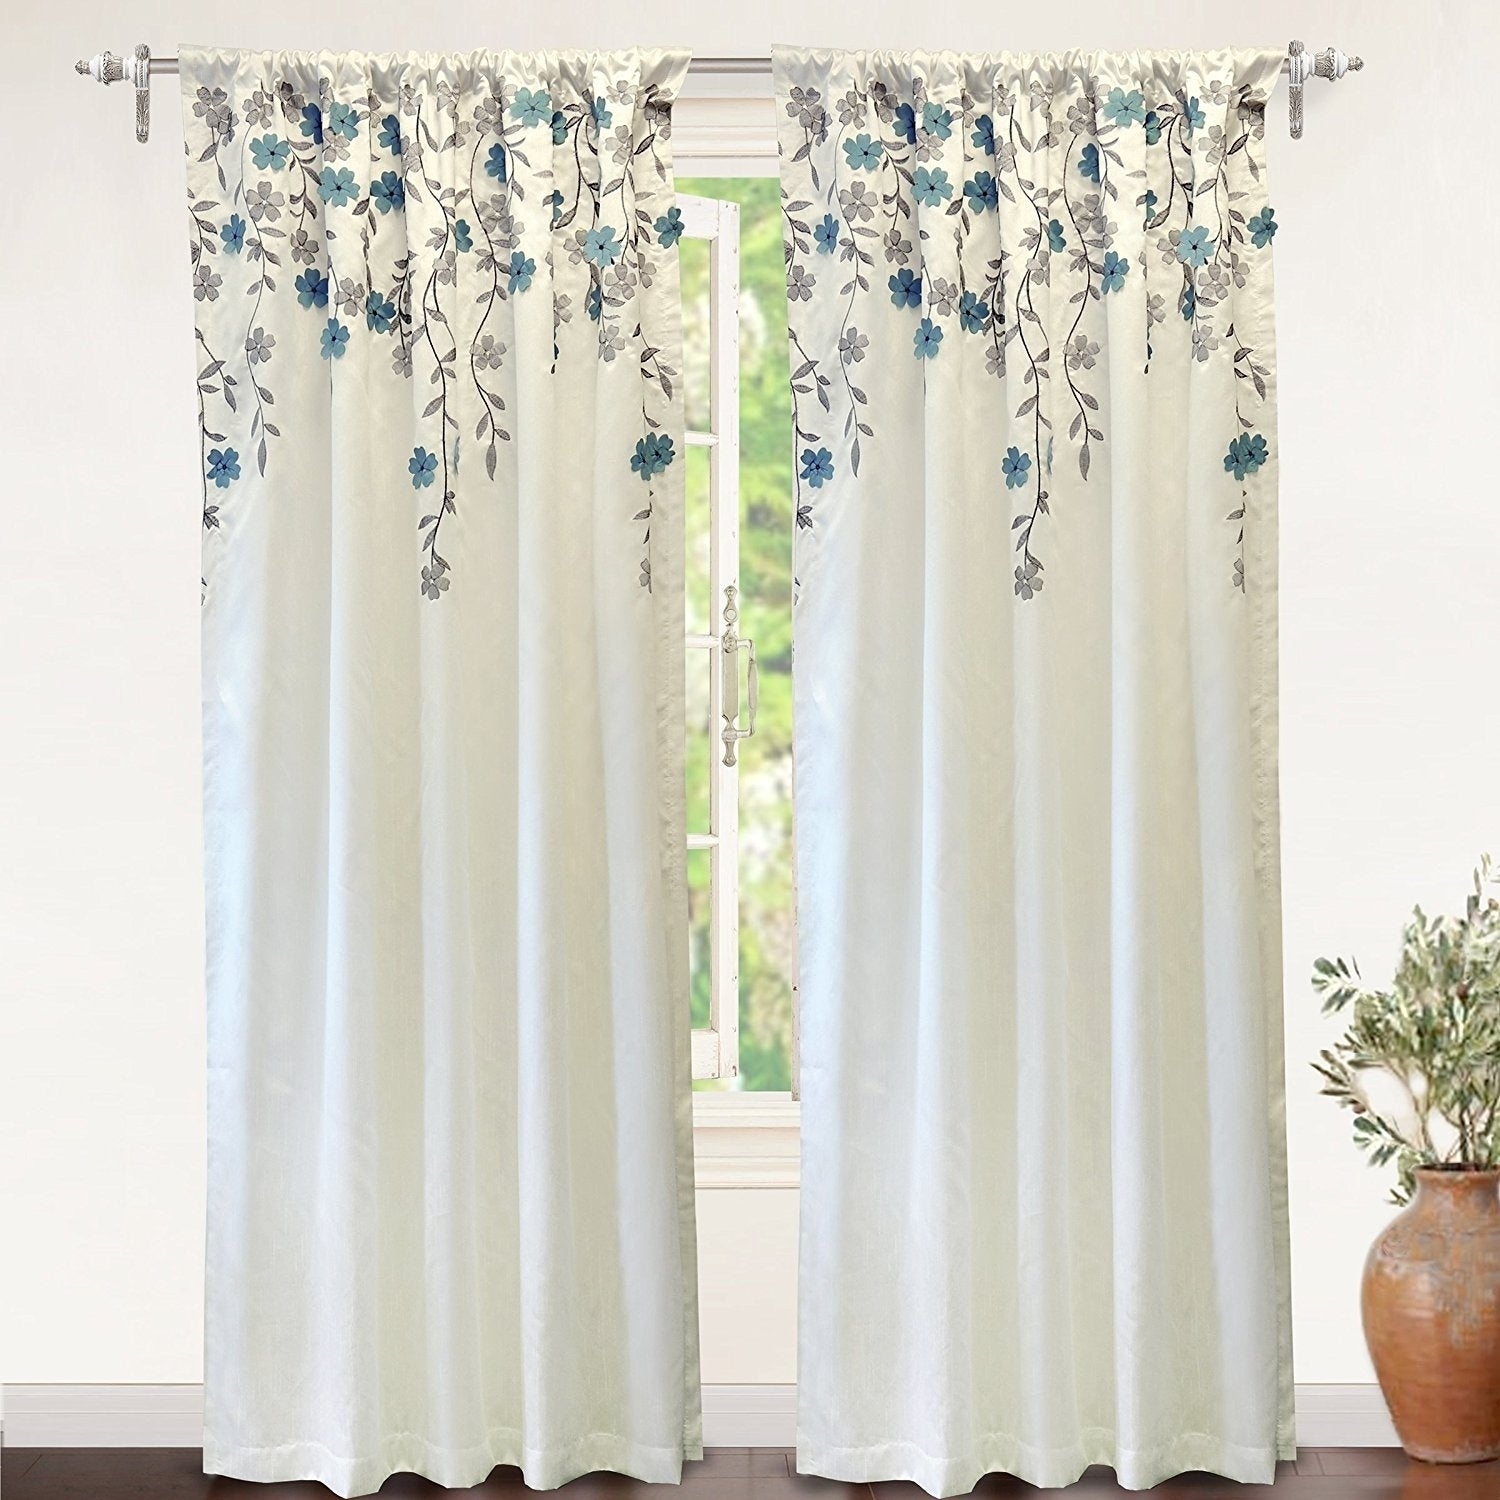 Driftaway Isabella Faux Silk Lined Thermal Embroidered Crafted Flower Window Curtain Panel Regarding Ofloral Embroidered Faux Silk Window Curtain Panels (View 2 of 20)